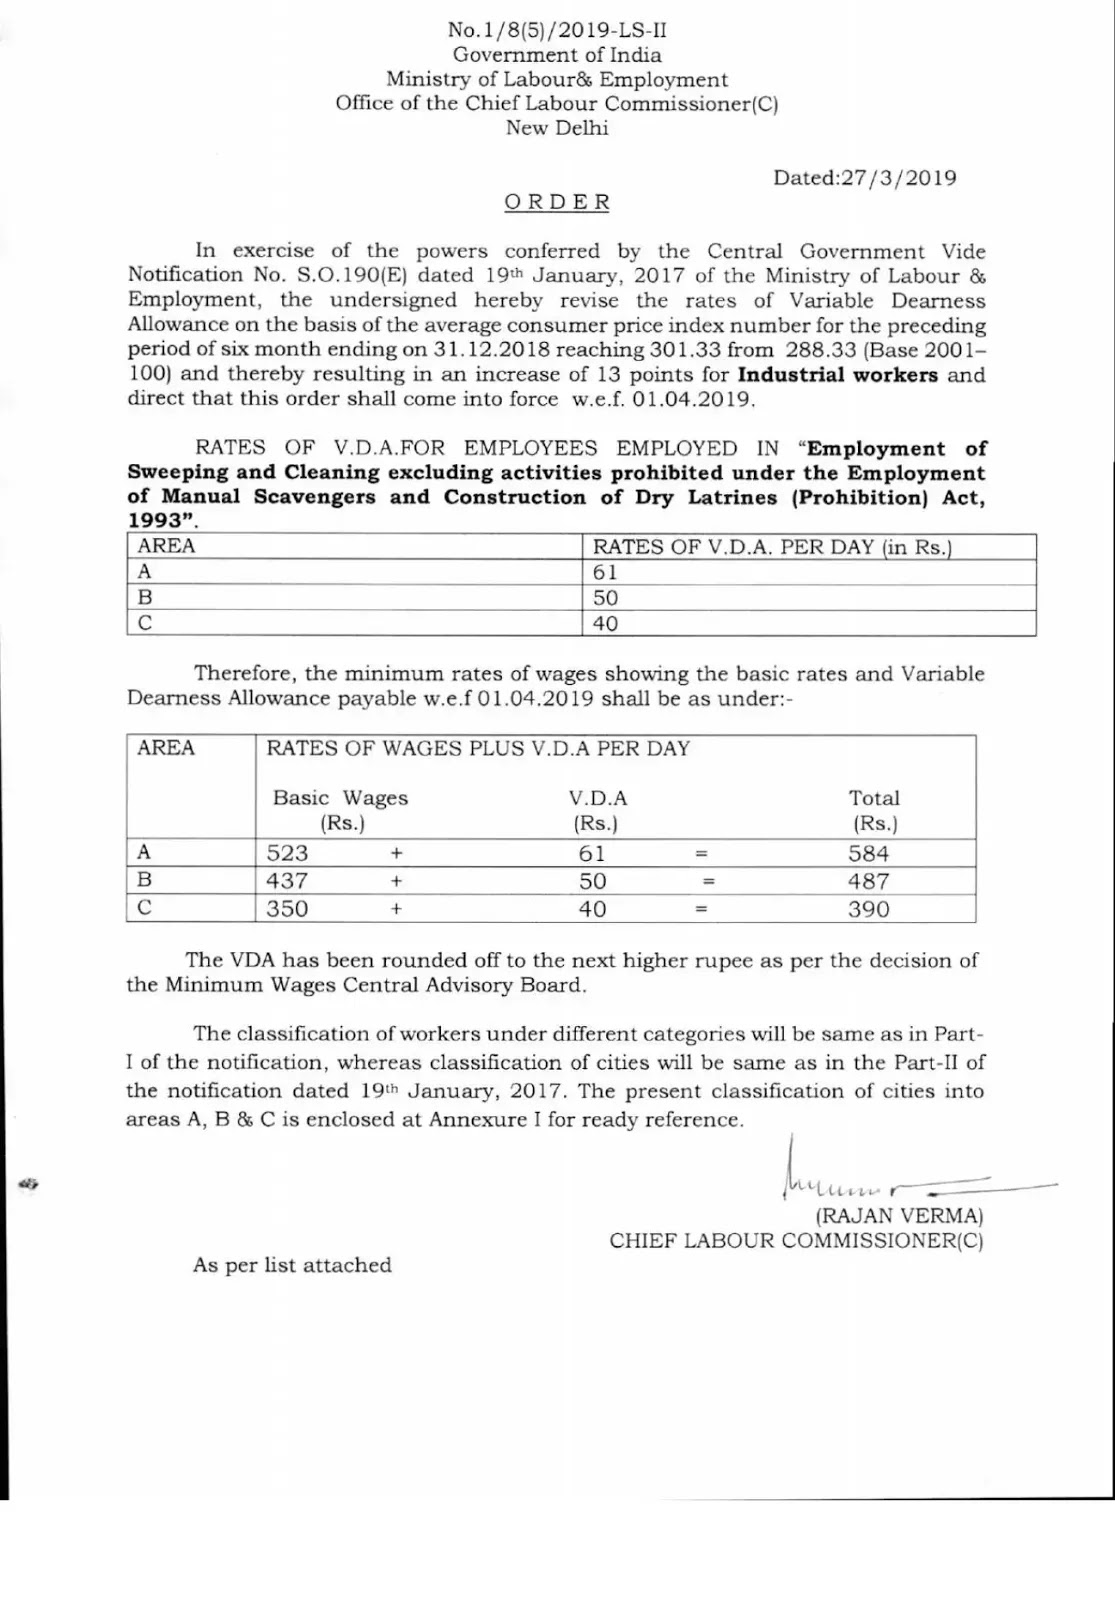 Minimum Wage & V.D.A (Variable D.A.) for Sweeping and Cleaning employees w.e.f. 01.04.2019  – Ministry of Labour & Employment